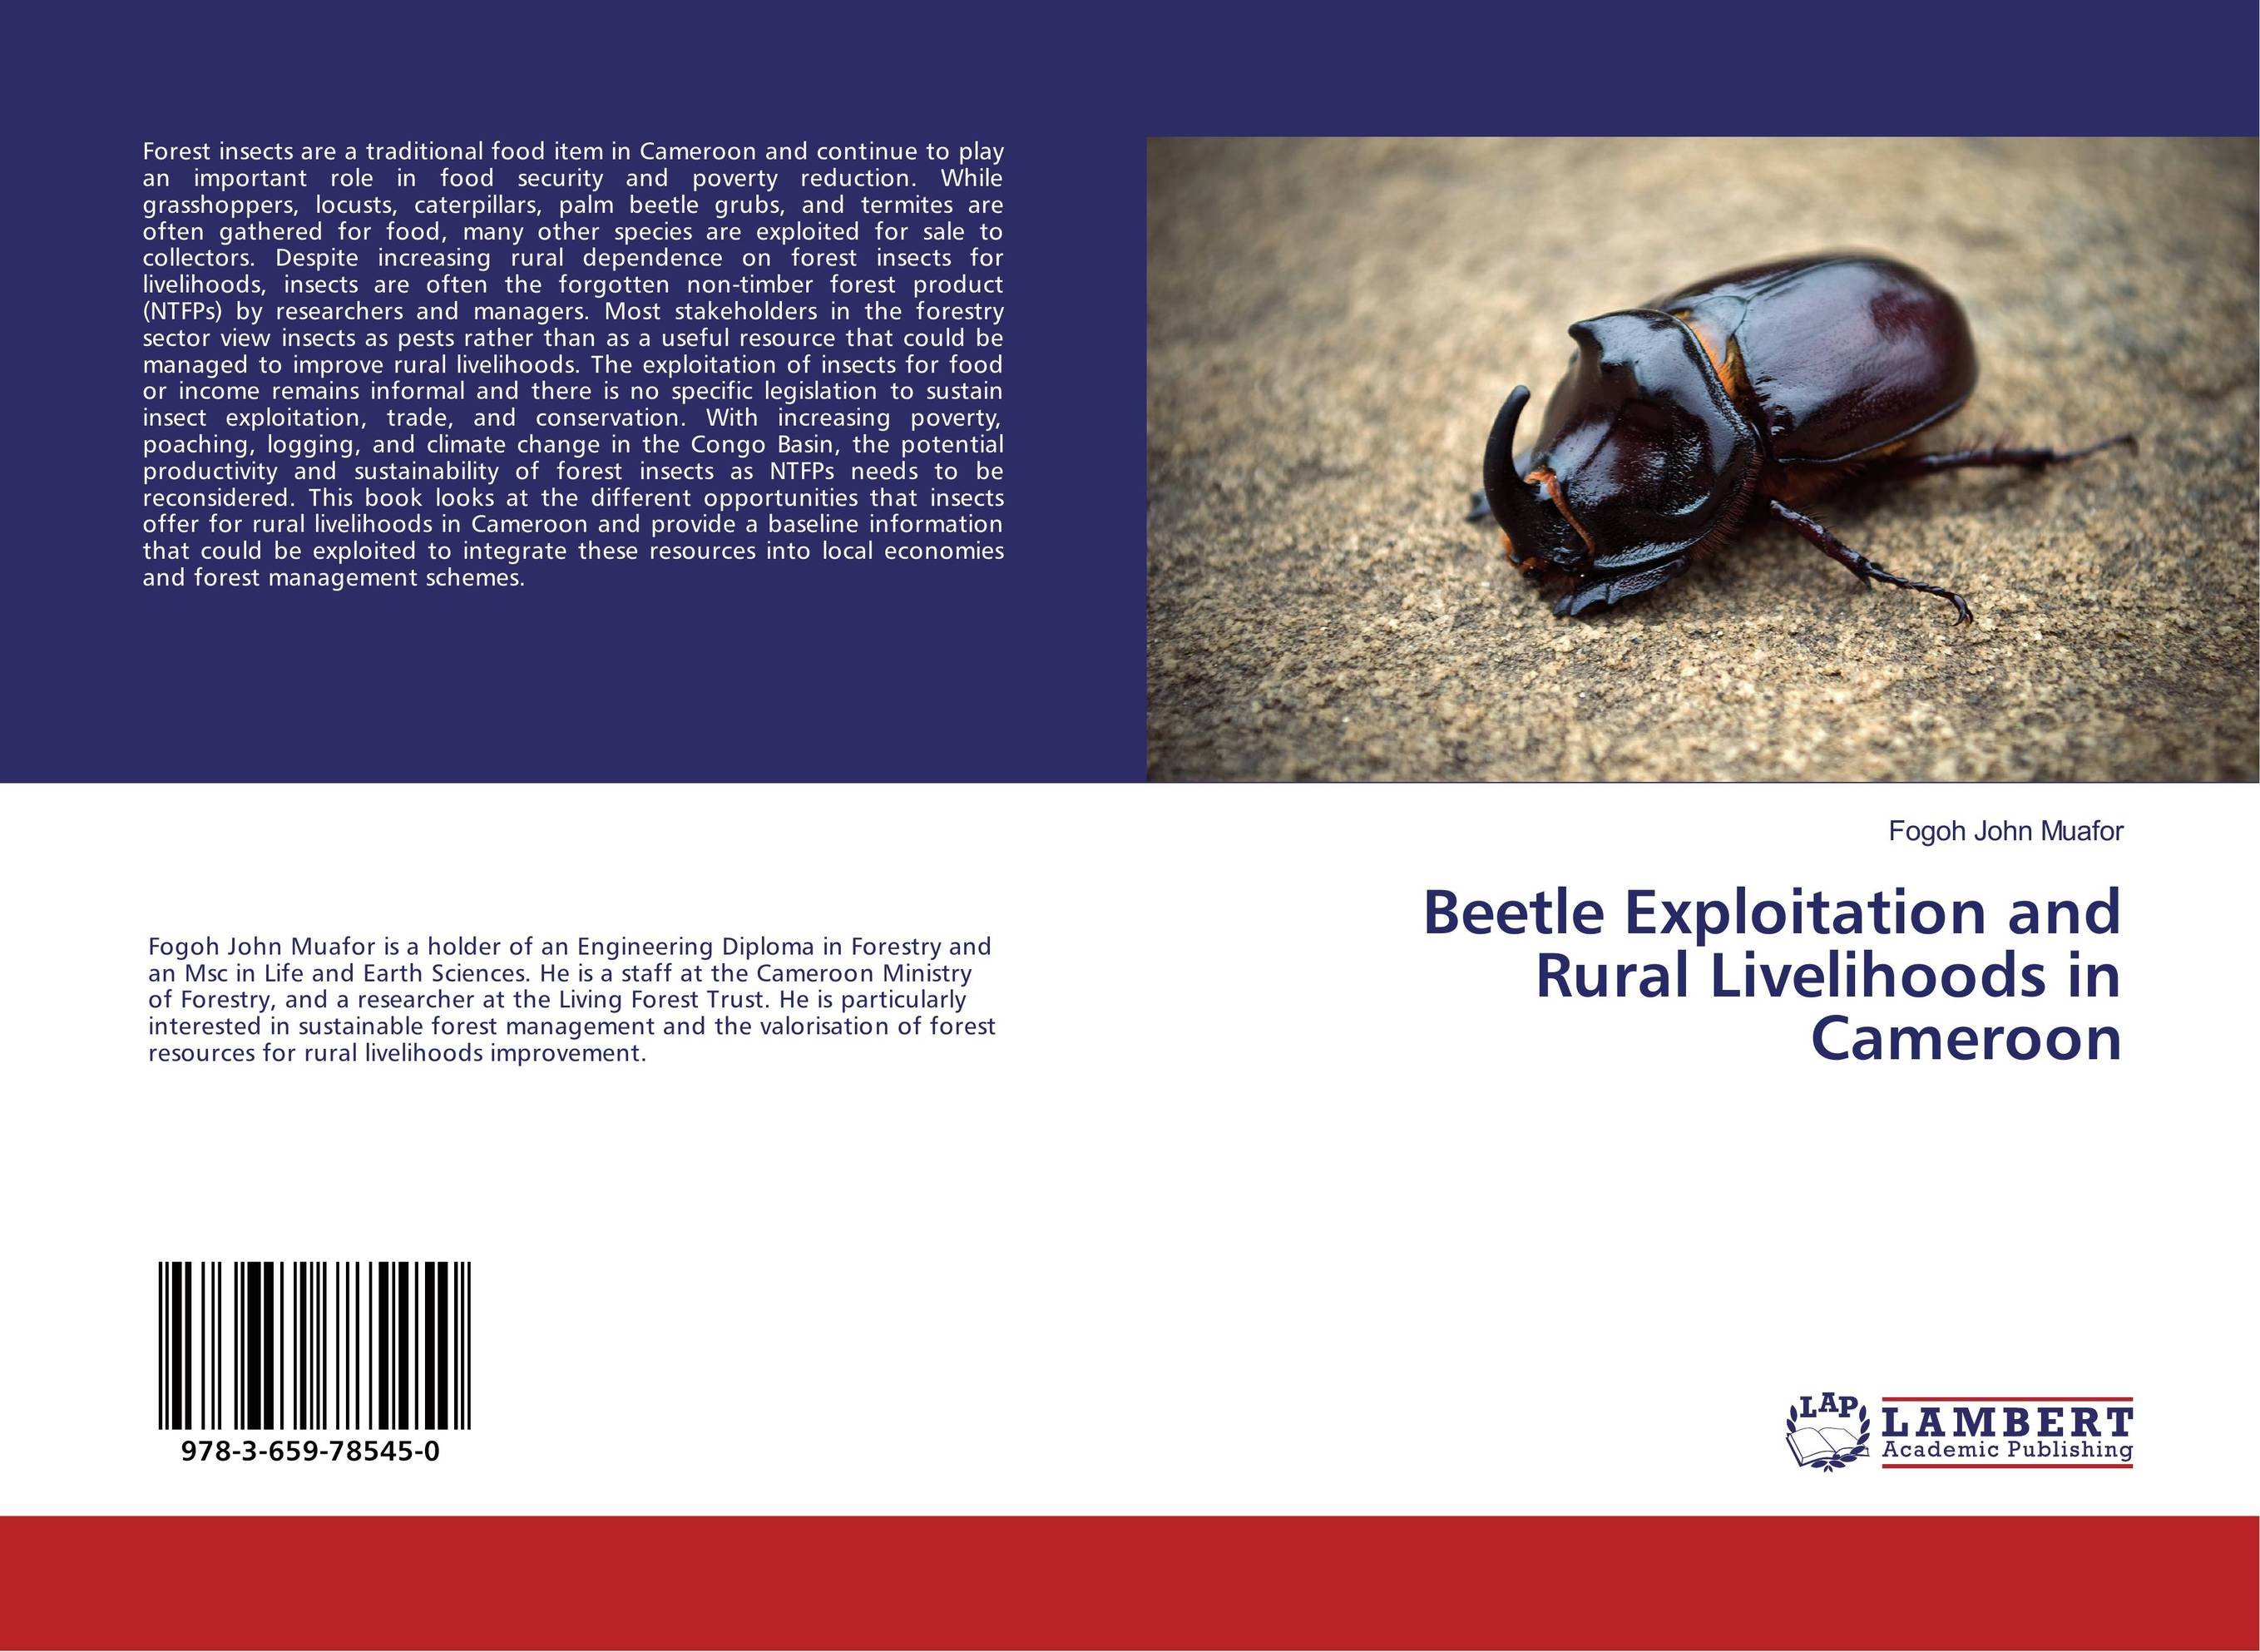 Beetle Exploitation and Rural Livelihoods in Cameroon jayaprakash arumugam and mohan s egg removal device for the management of stored product insects